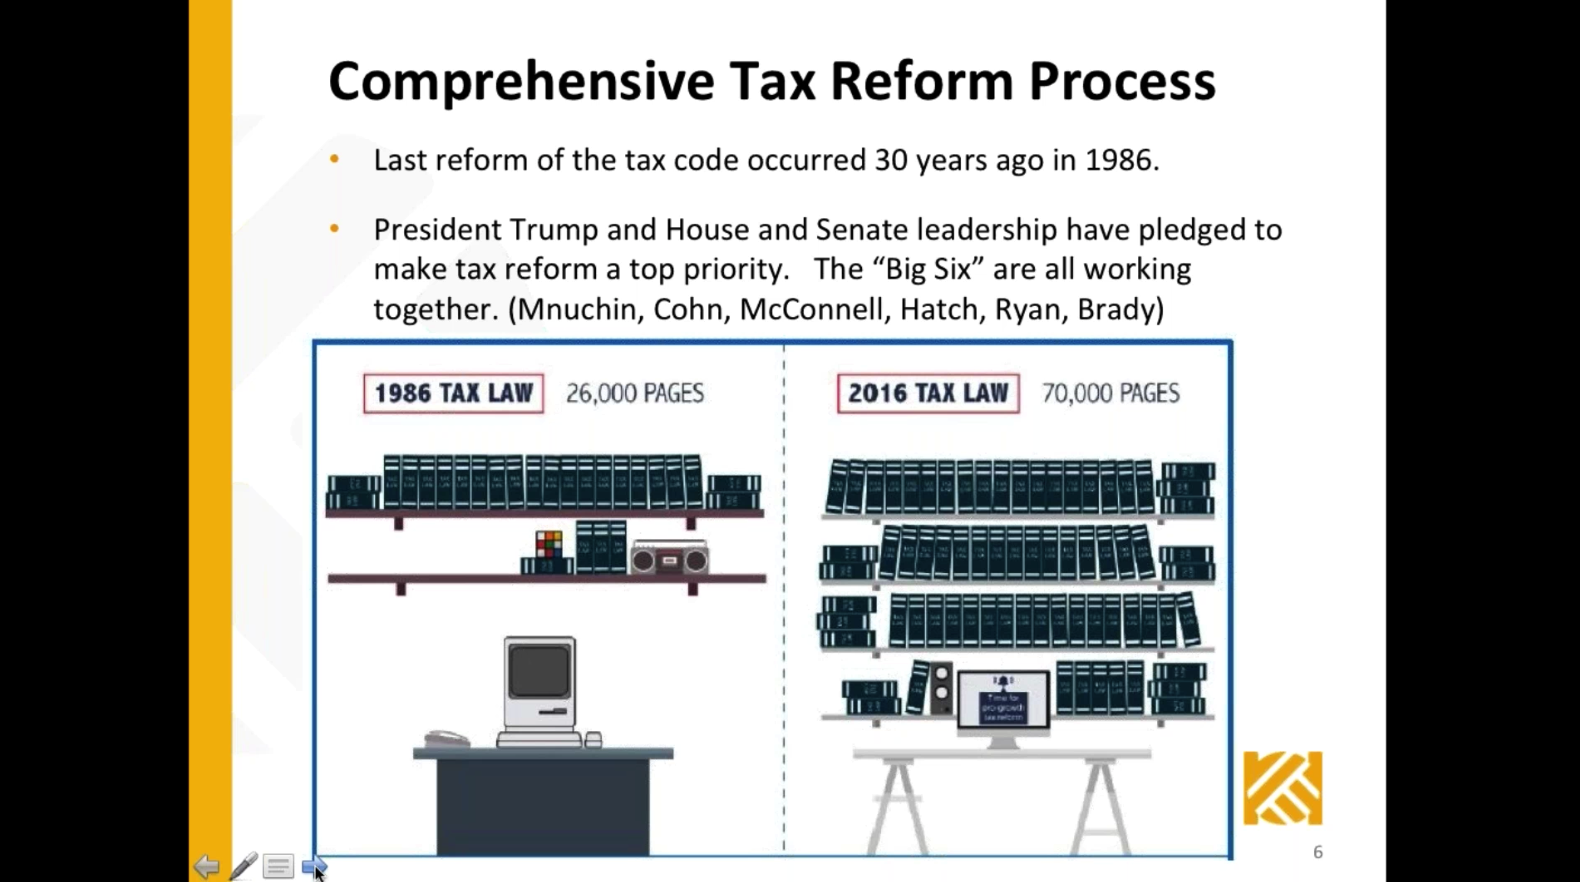 tax-reform-process-11-21-17.png